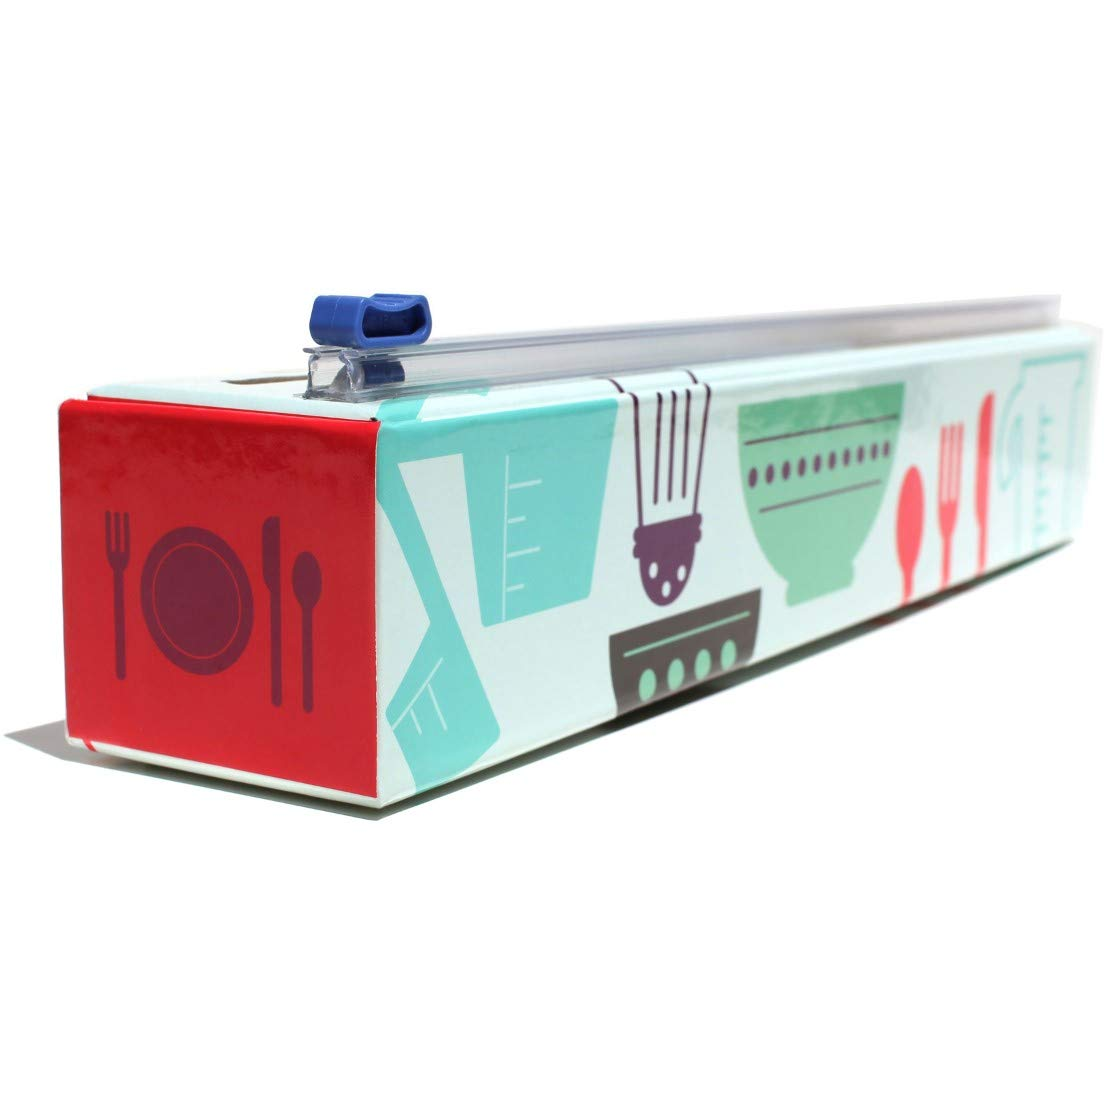 Chicwrap Cook's Tools Refillable Plastic Wrap Dispenser/Slide Cutter and 250' of Professional BPA Free Plastic Wrap by ChicWrap